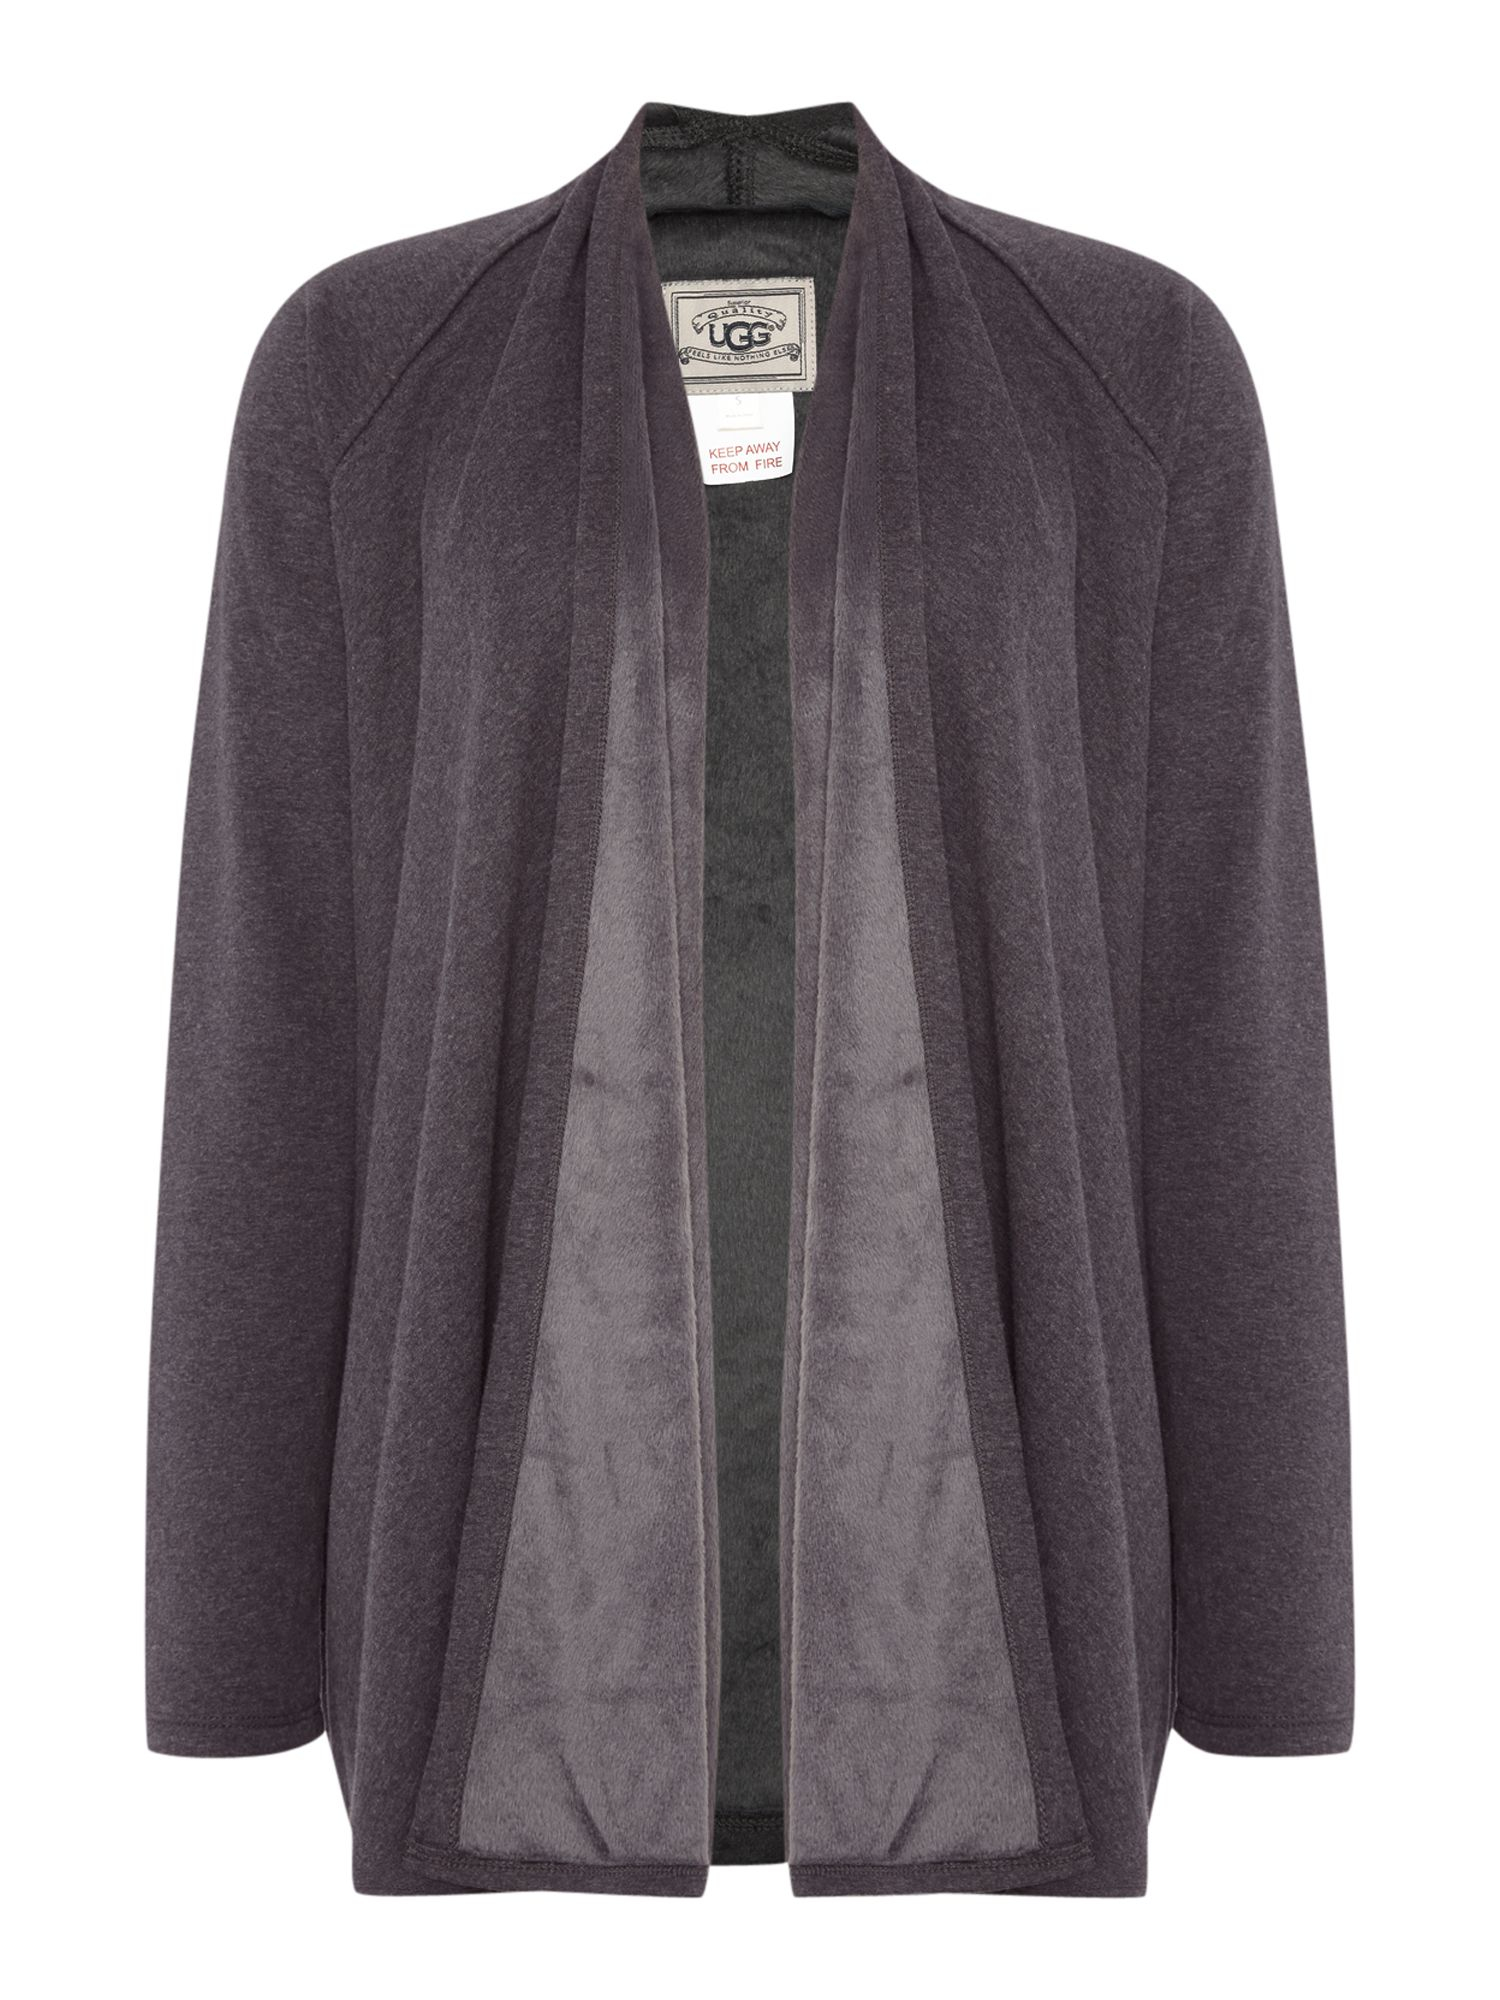 Ugg Meadow Knit Waterfall Fleece Cardigan in Gray | Lyst